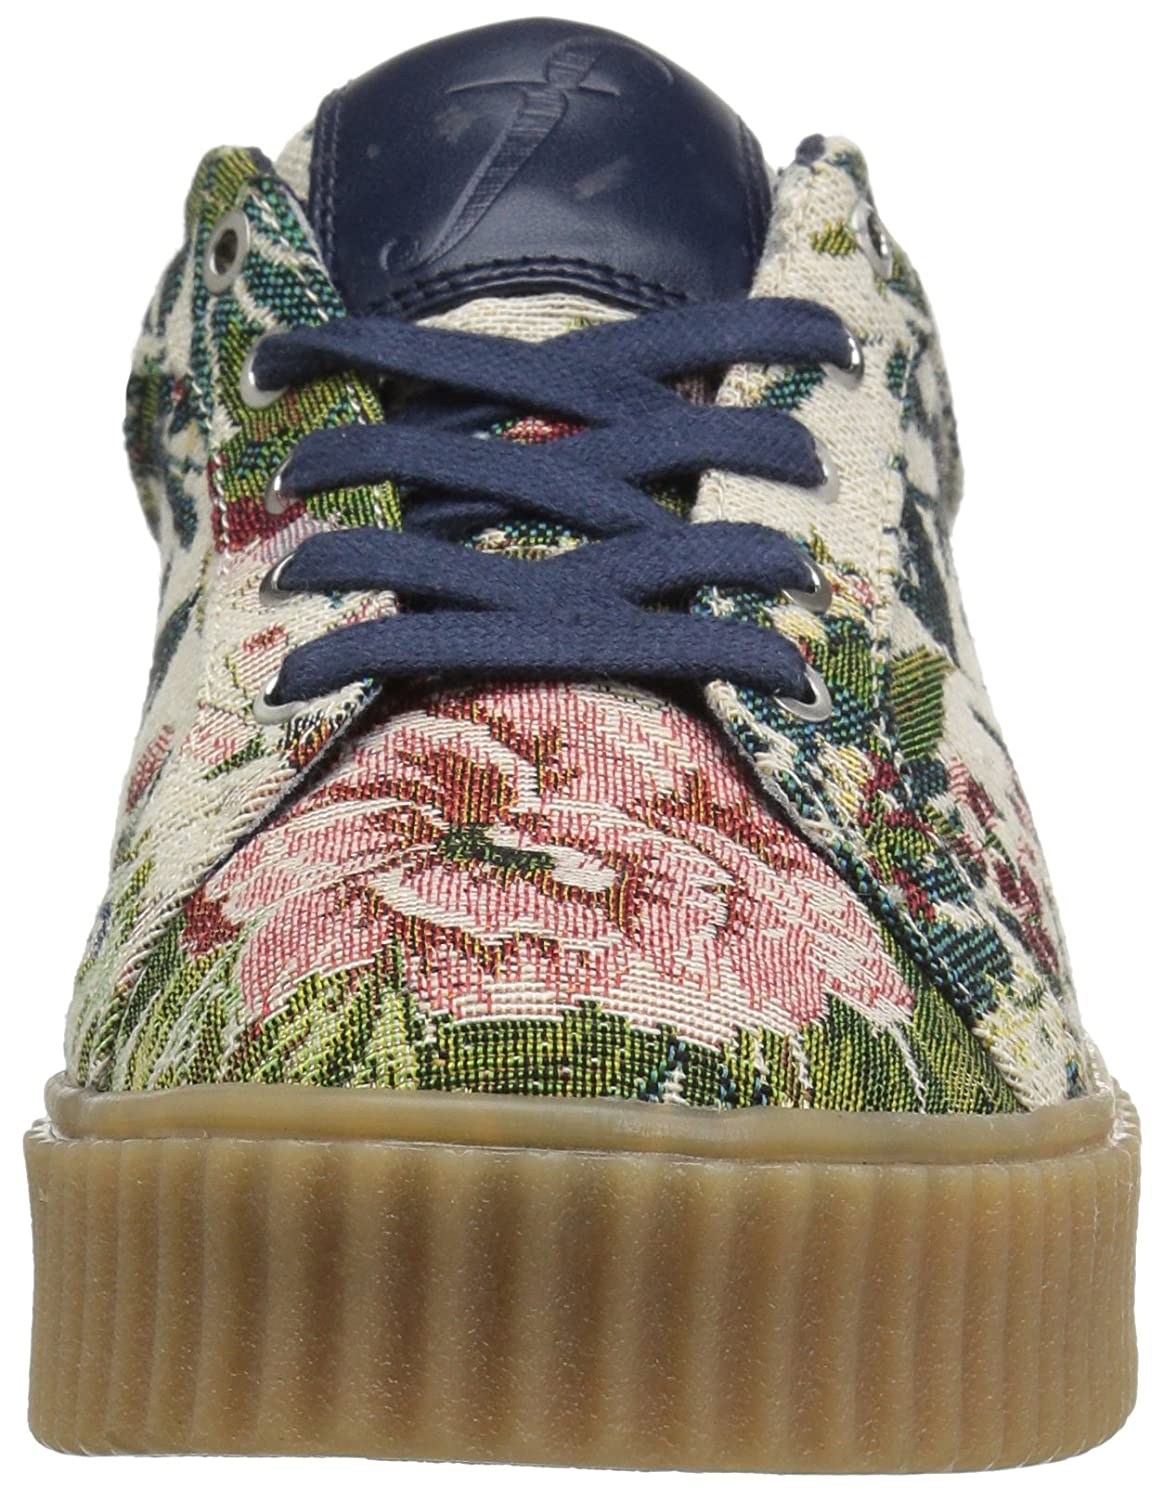 The Fix Women's Tanner Creeper Fashion US|Natural Sneaker